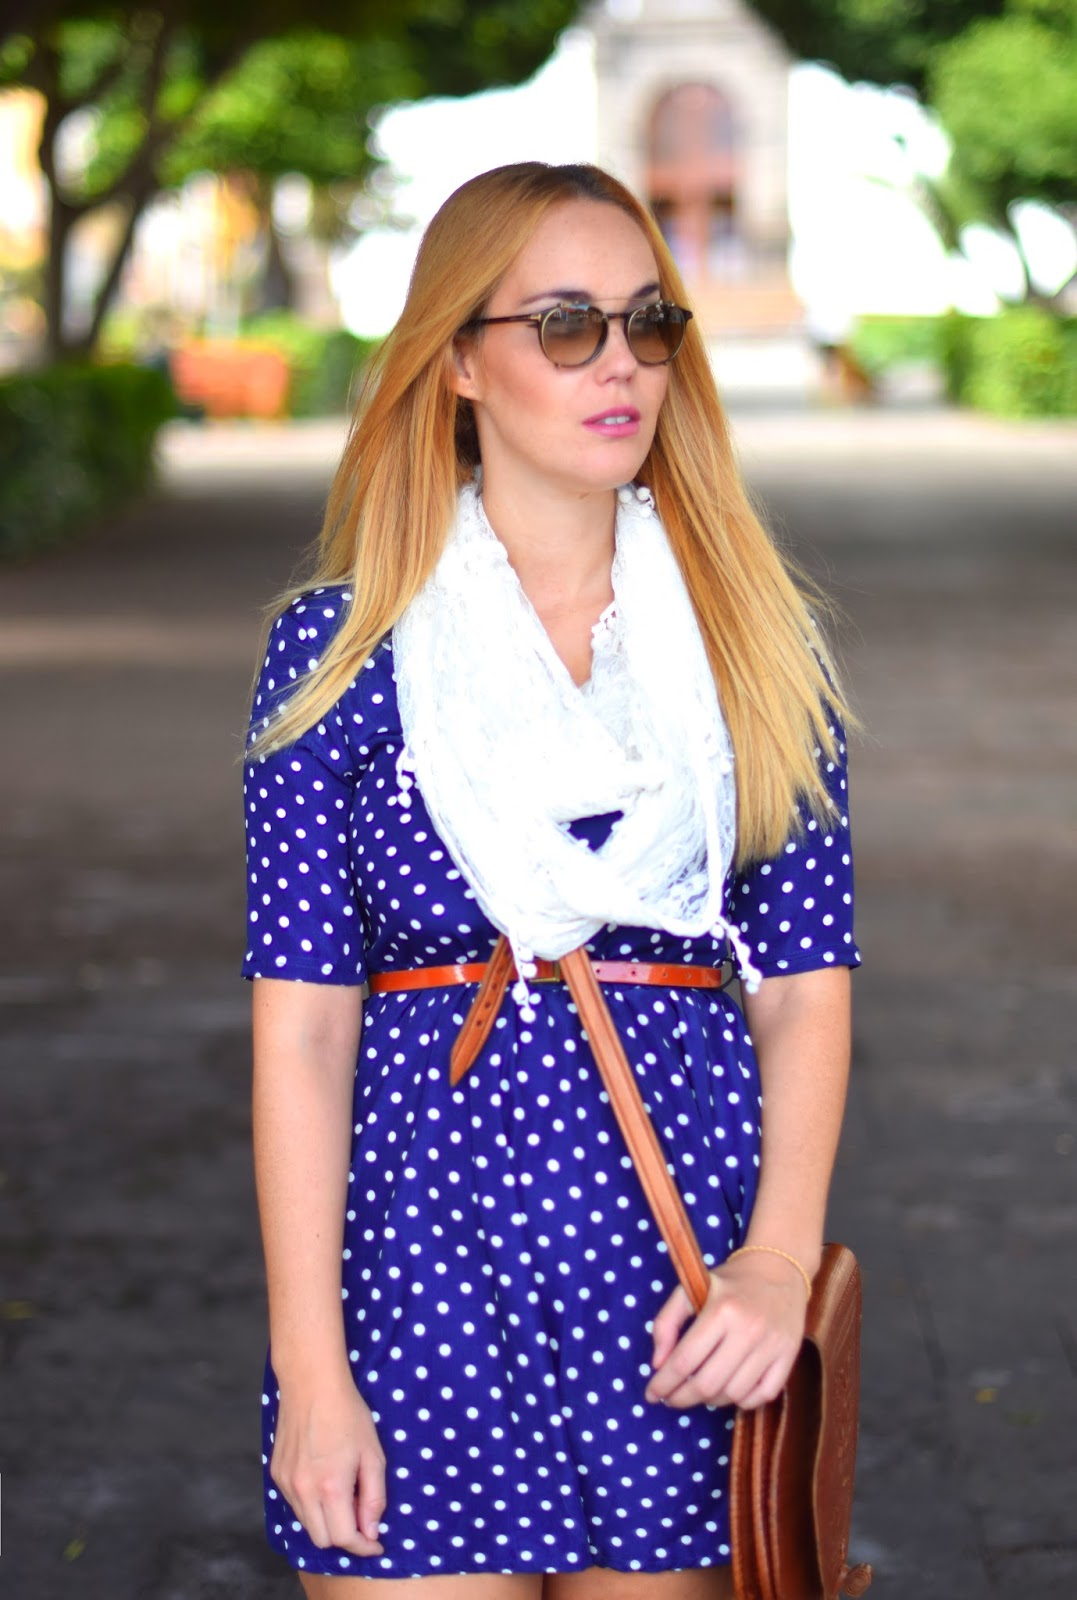 nery hdez, optical h , glamulet, polka dots , choies, optica herradores